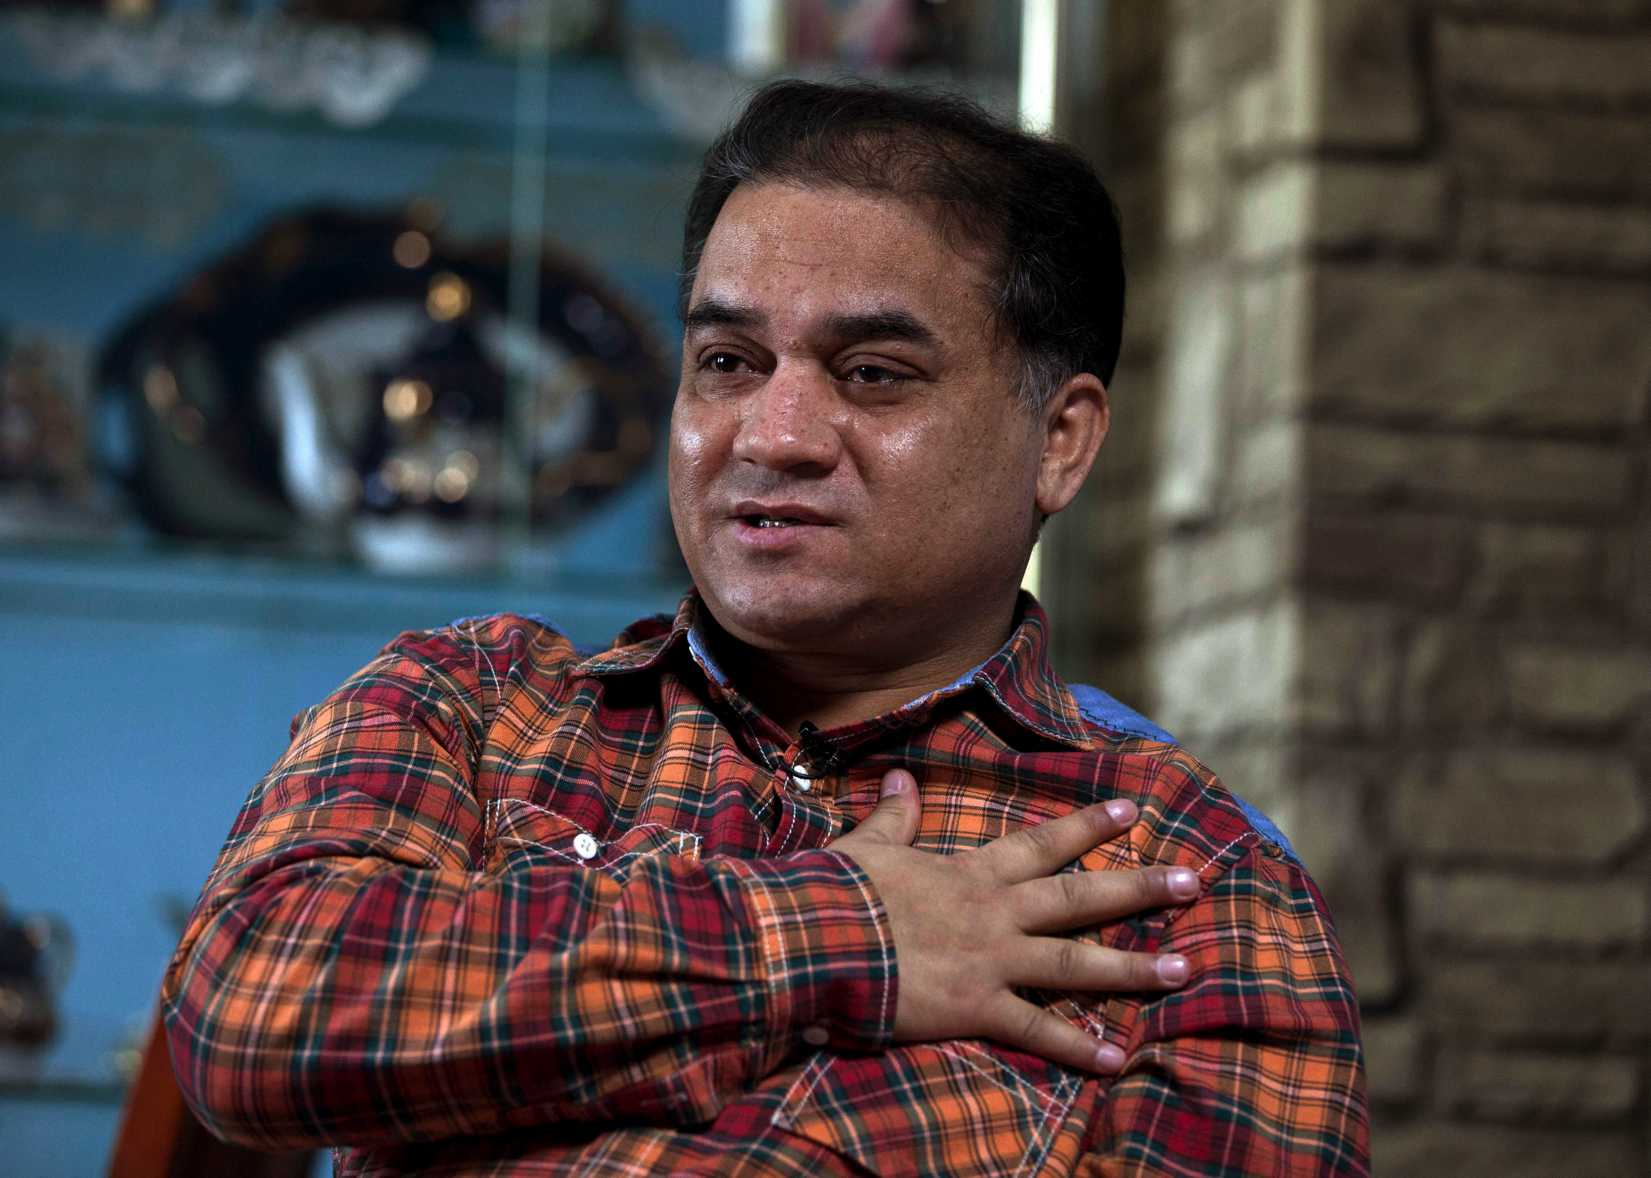 Ilham Tohti, an outspoken scholar of China's Uighur ethnic minority, speaks during an interview at his home in Beijing on Feb. 4, 2013